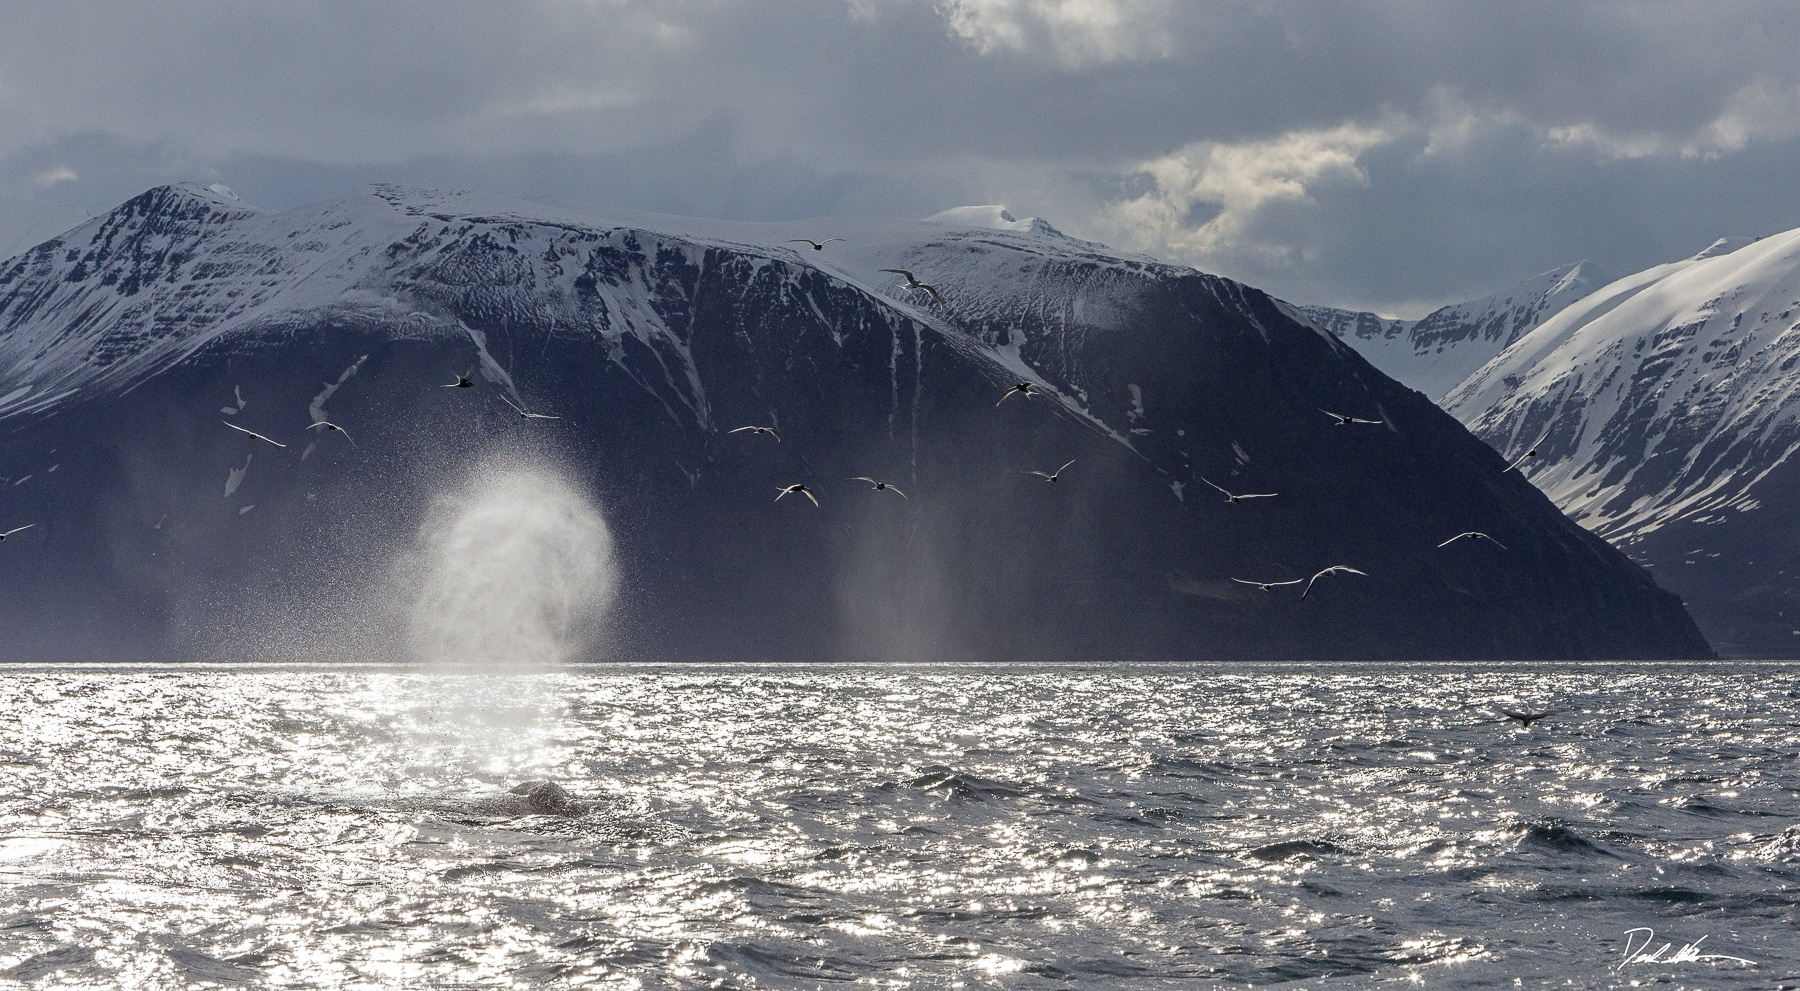 Whales breaching in Iceland